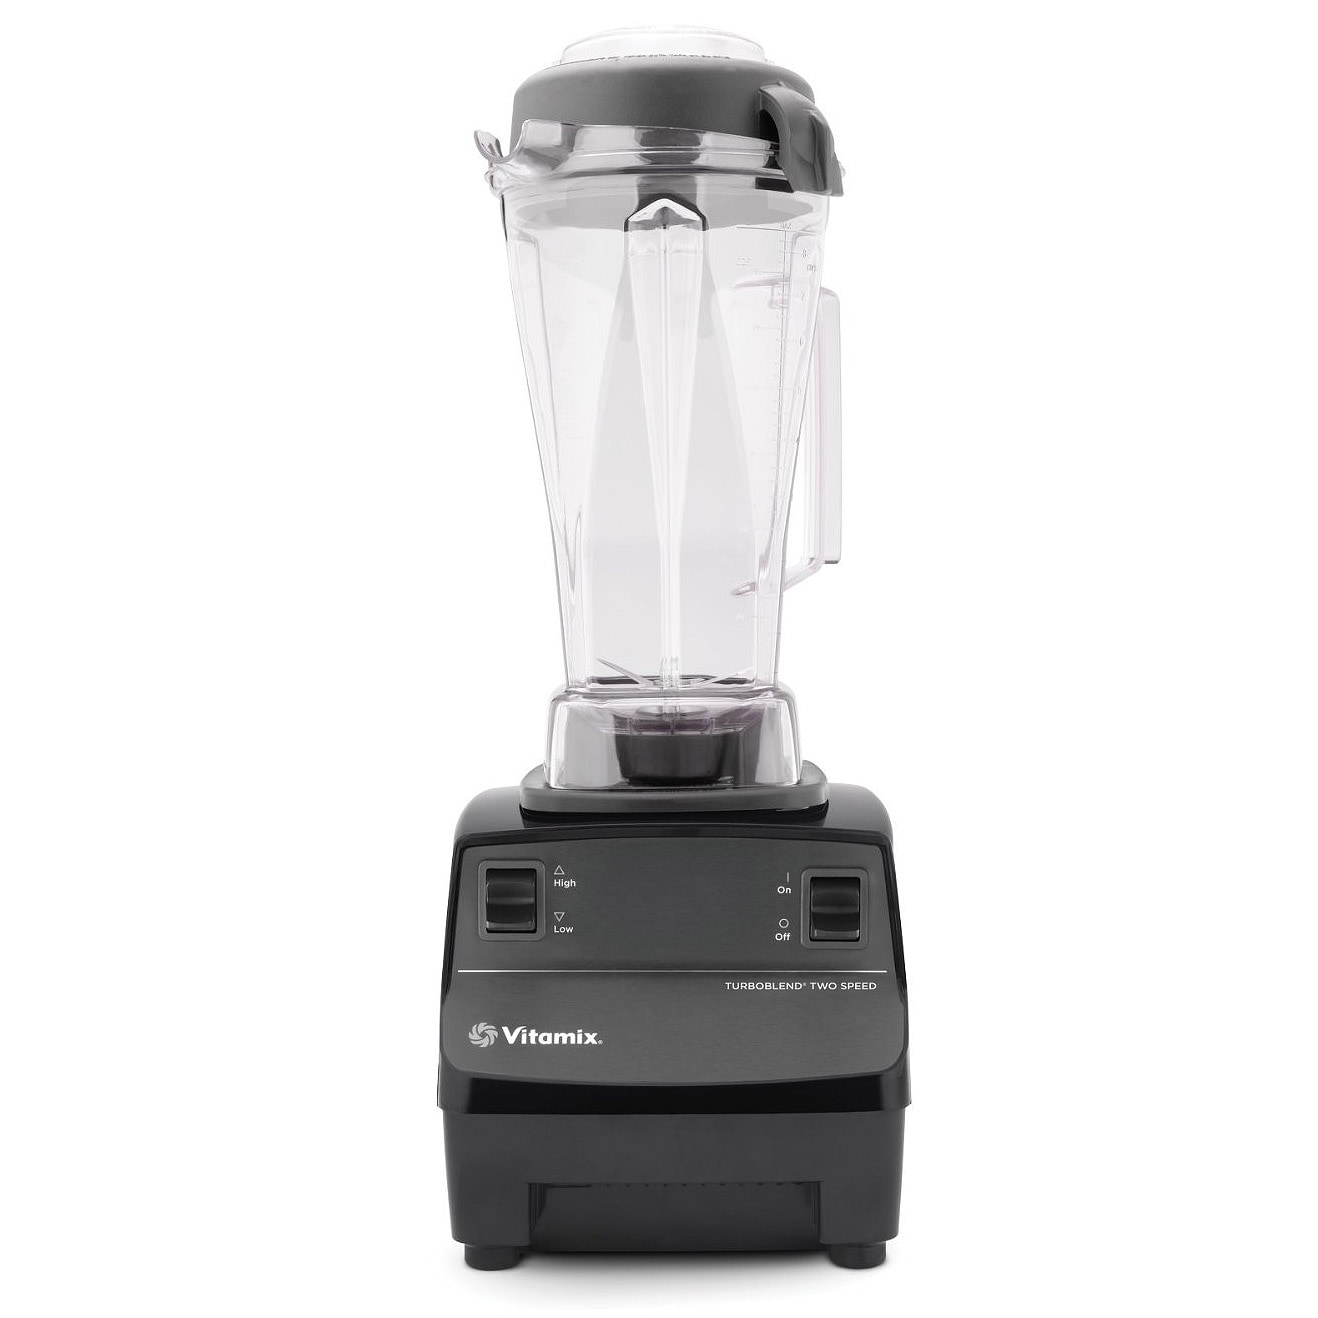 Vitamix TurboBlend 2-speed Blender